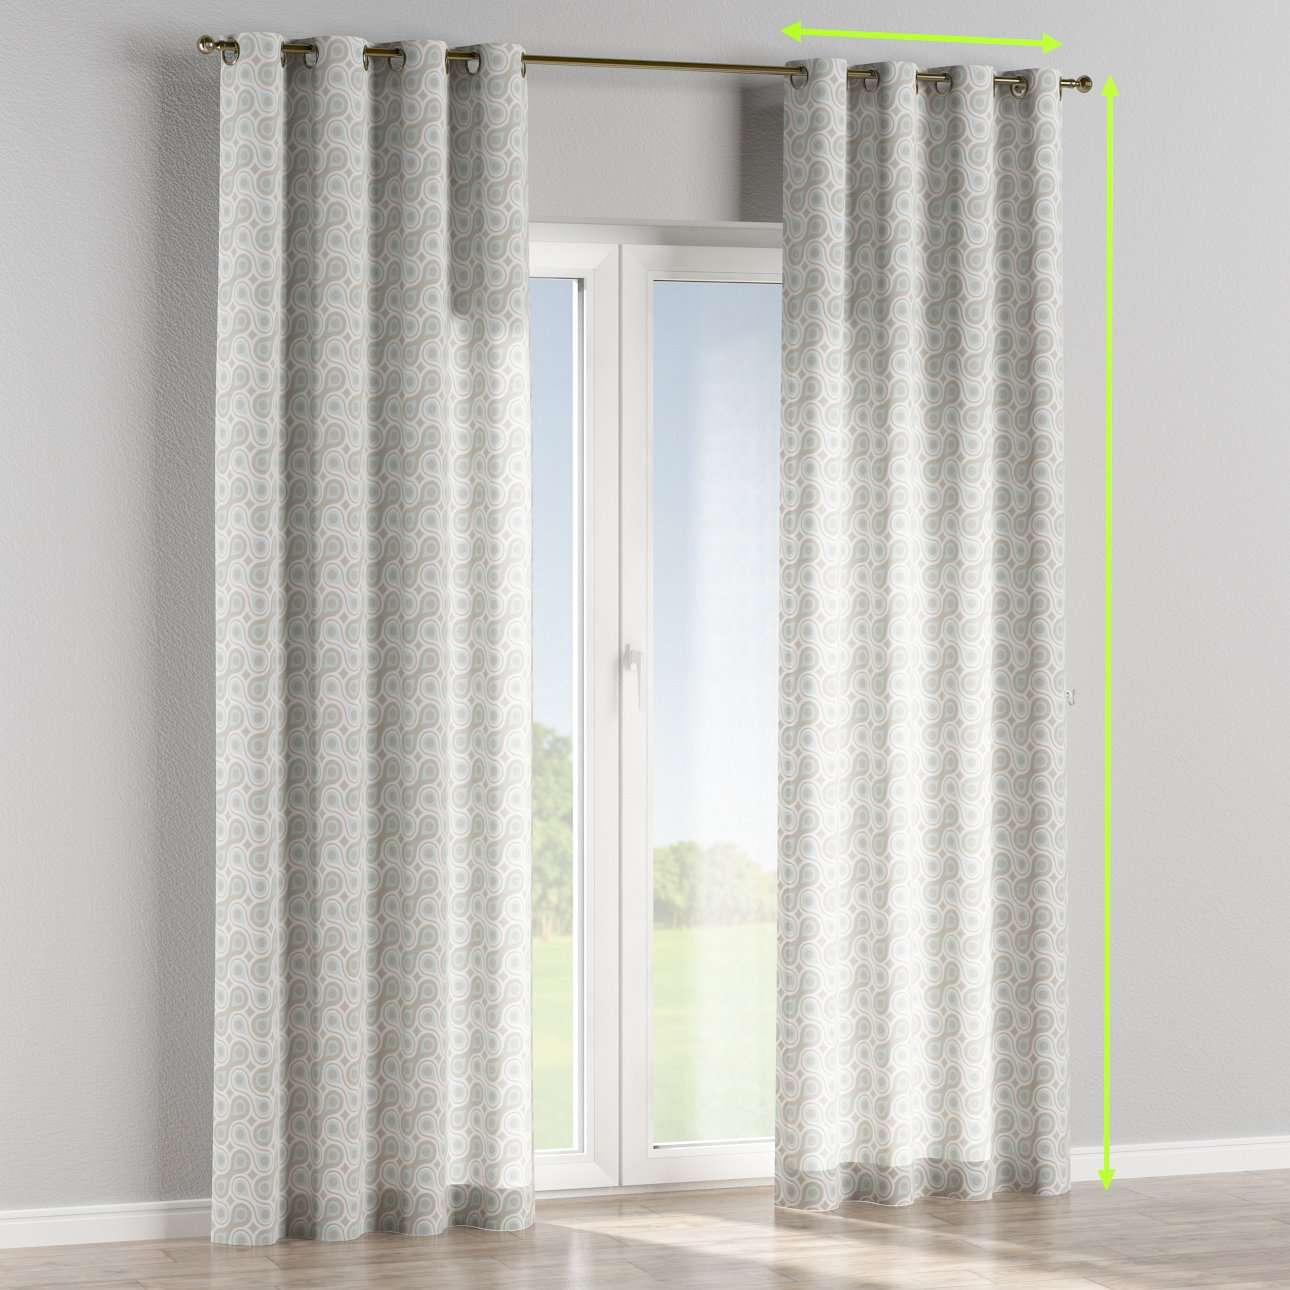 Eyelet lined curtains in collection Flowers, fabric: 311-13